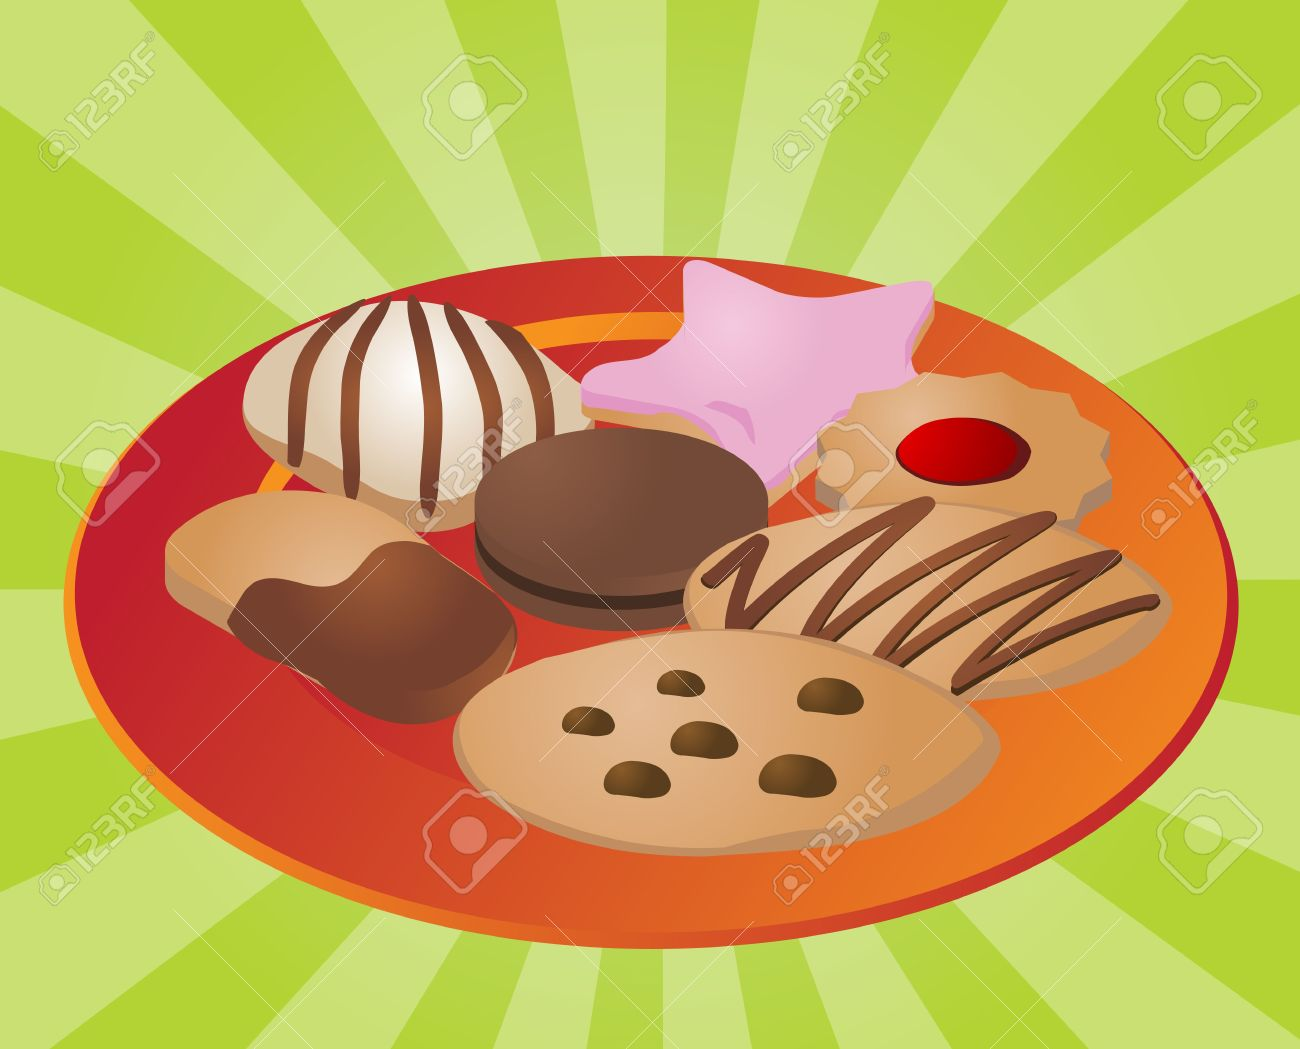 Assorted Cookies And Fancy Sweet Biscuits, Illustration Stock.